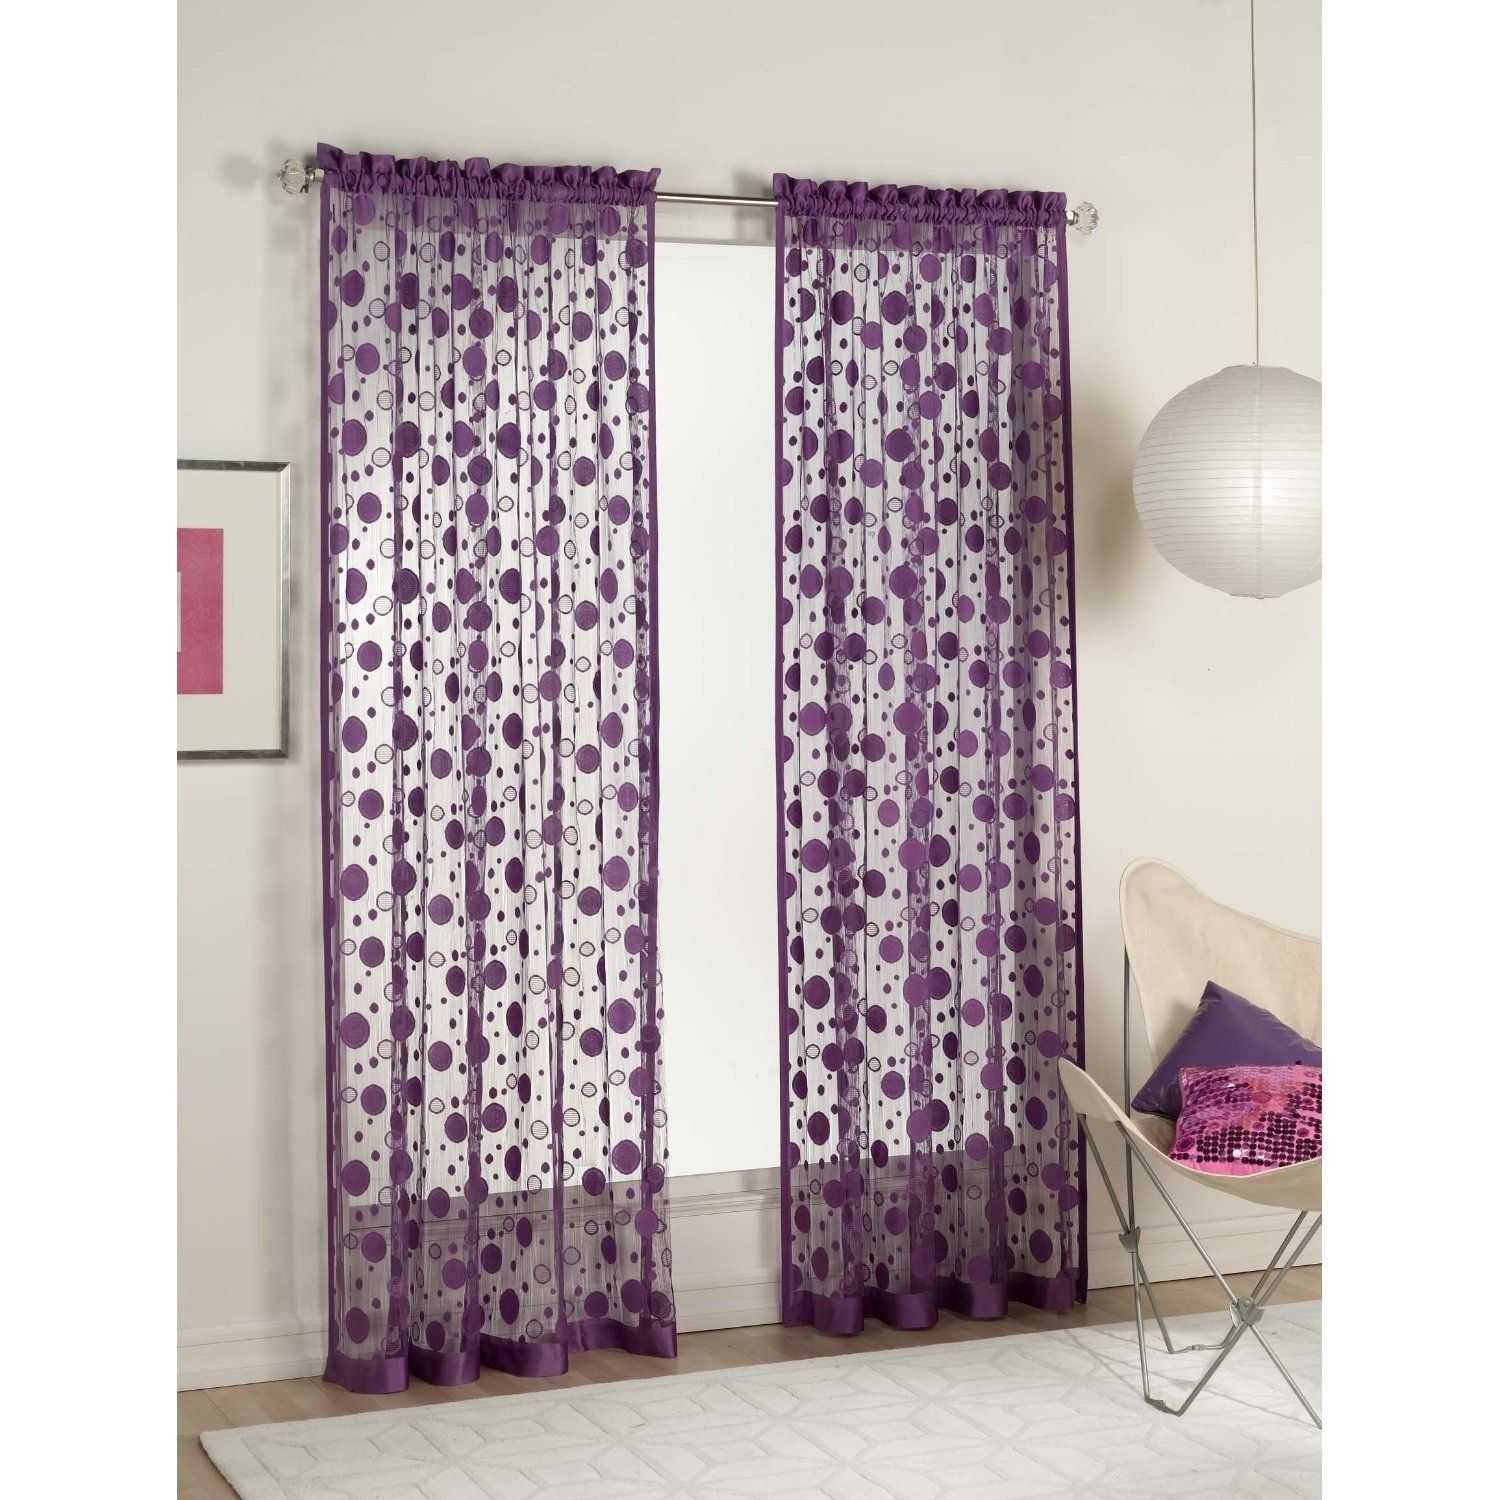 1000 Images About Master Bedroom On Pinterest Purple Curtains For Bedroom. Purple Curtains For Bedroom   Bedroom and Living Room Image